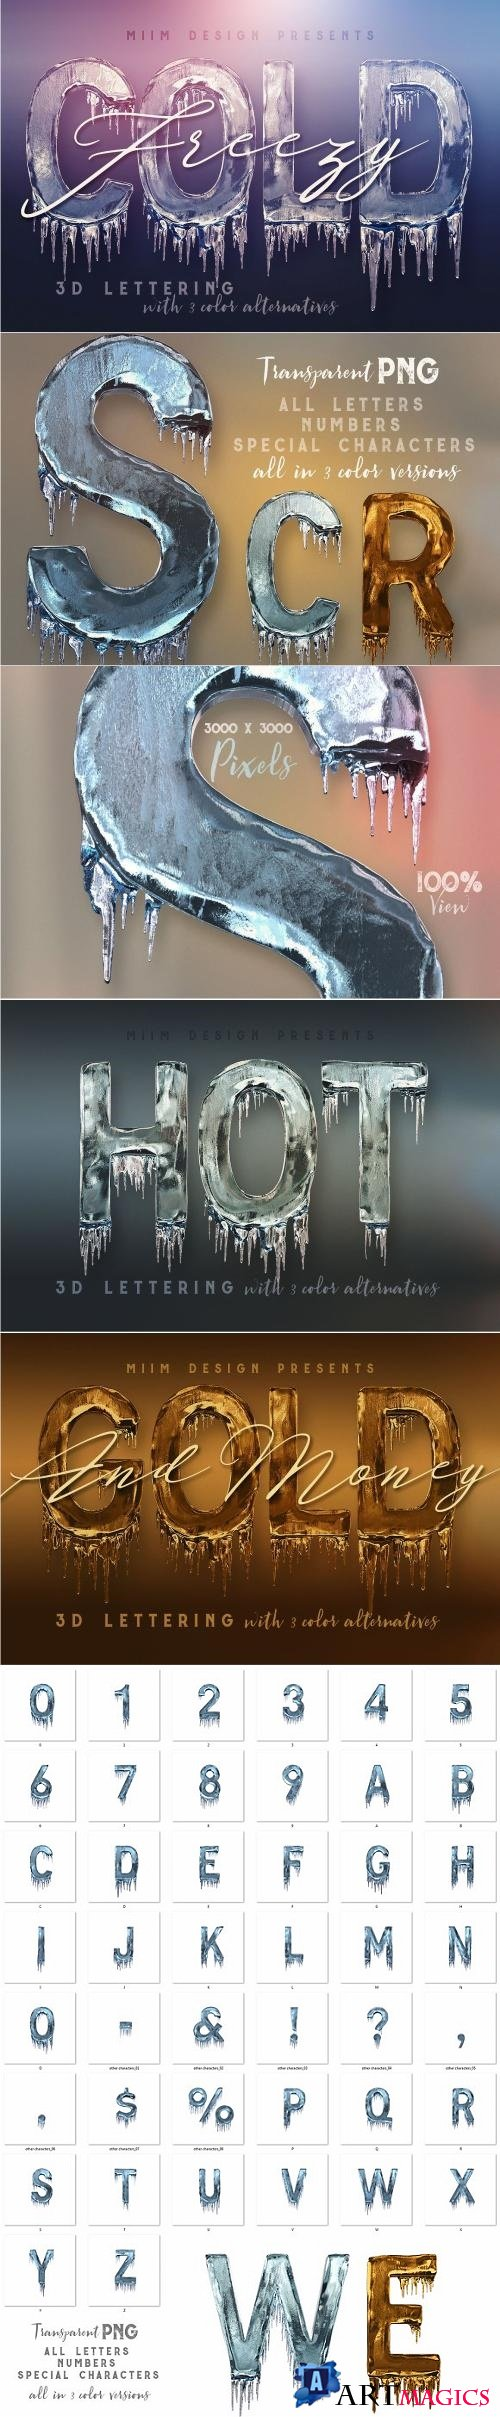 Ice Cold - 3D Lettering - 2221273